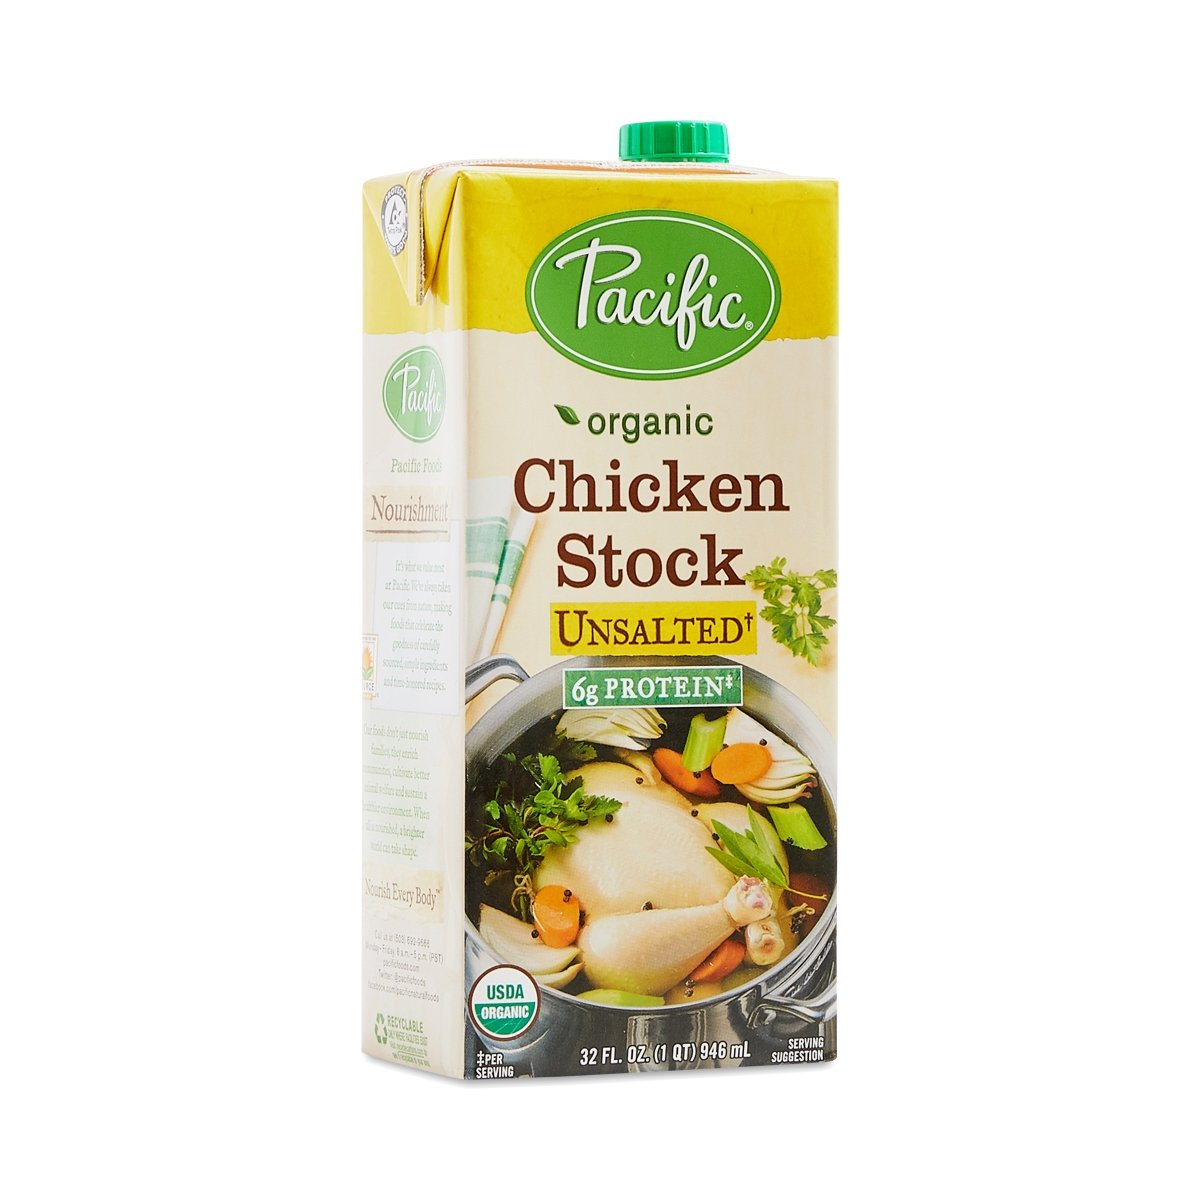 Pacific Foods Stock Chicken Unsalted Organic, 32 lb by Pacific Foods